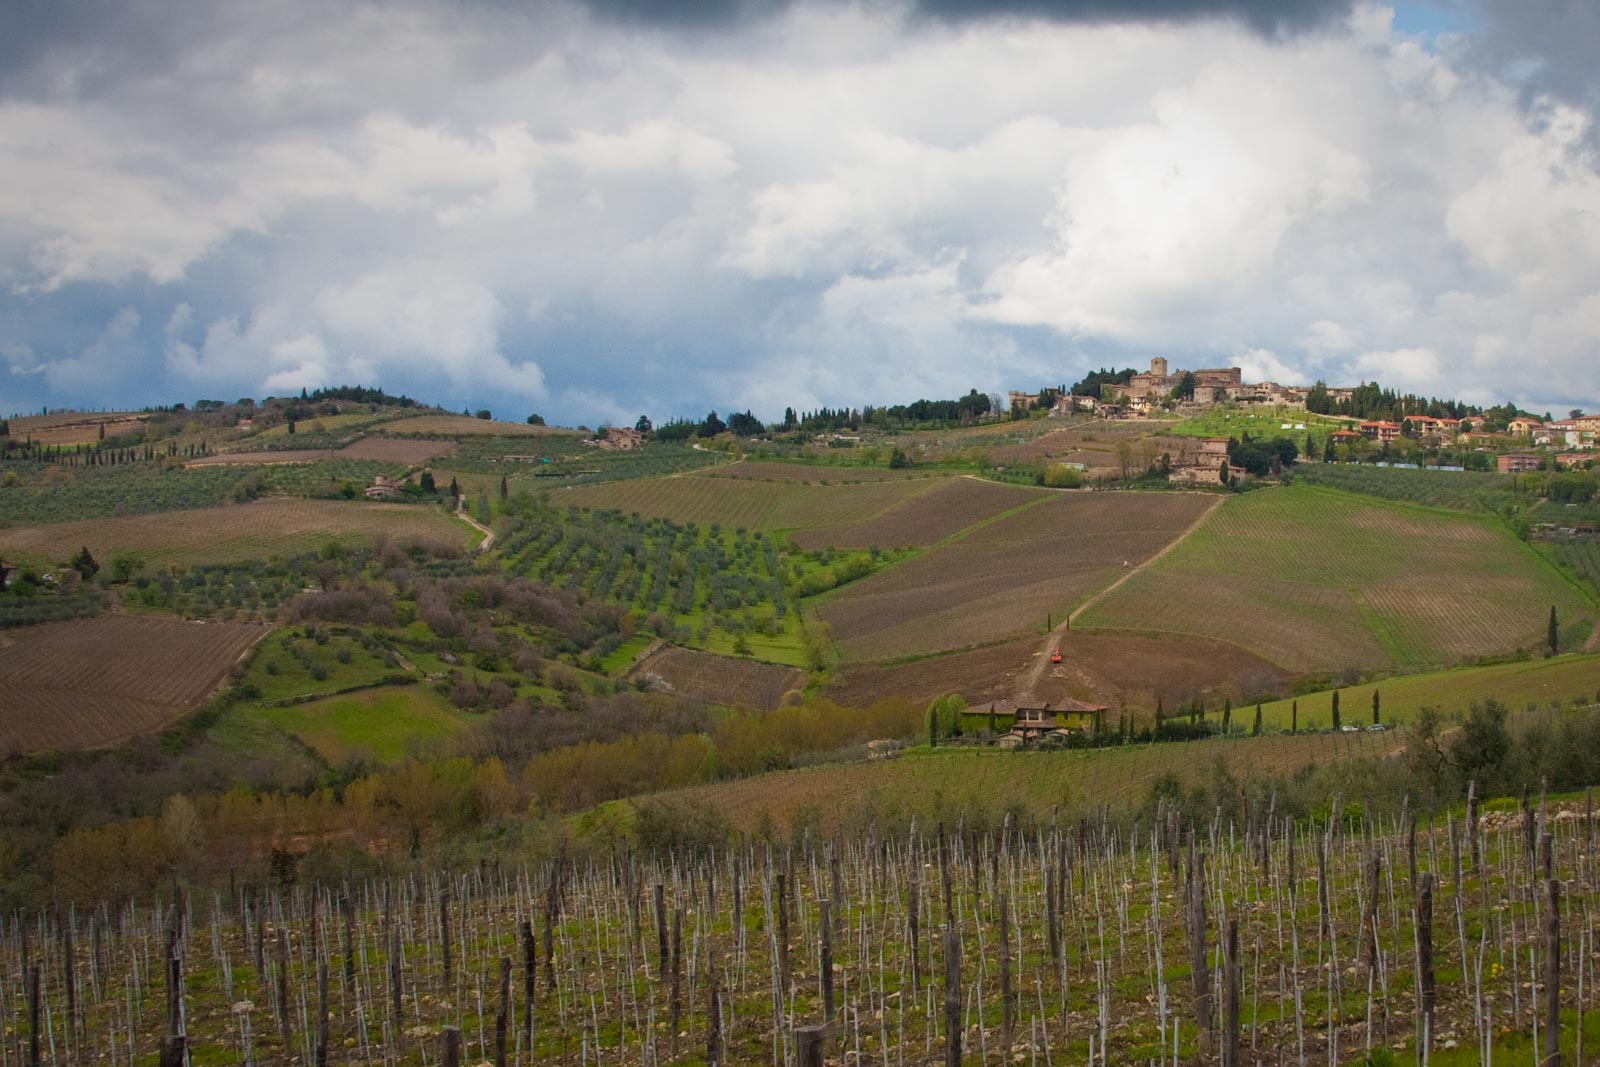 Panzano, Italy in the heart of the Chianti Classico wine region. ©Kevin Day / Opening a Bottle